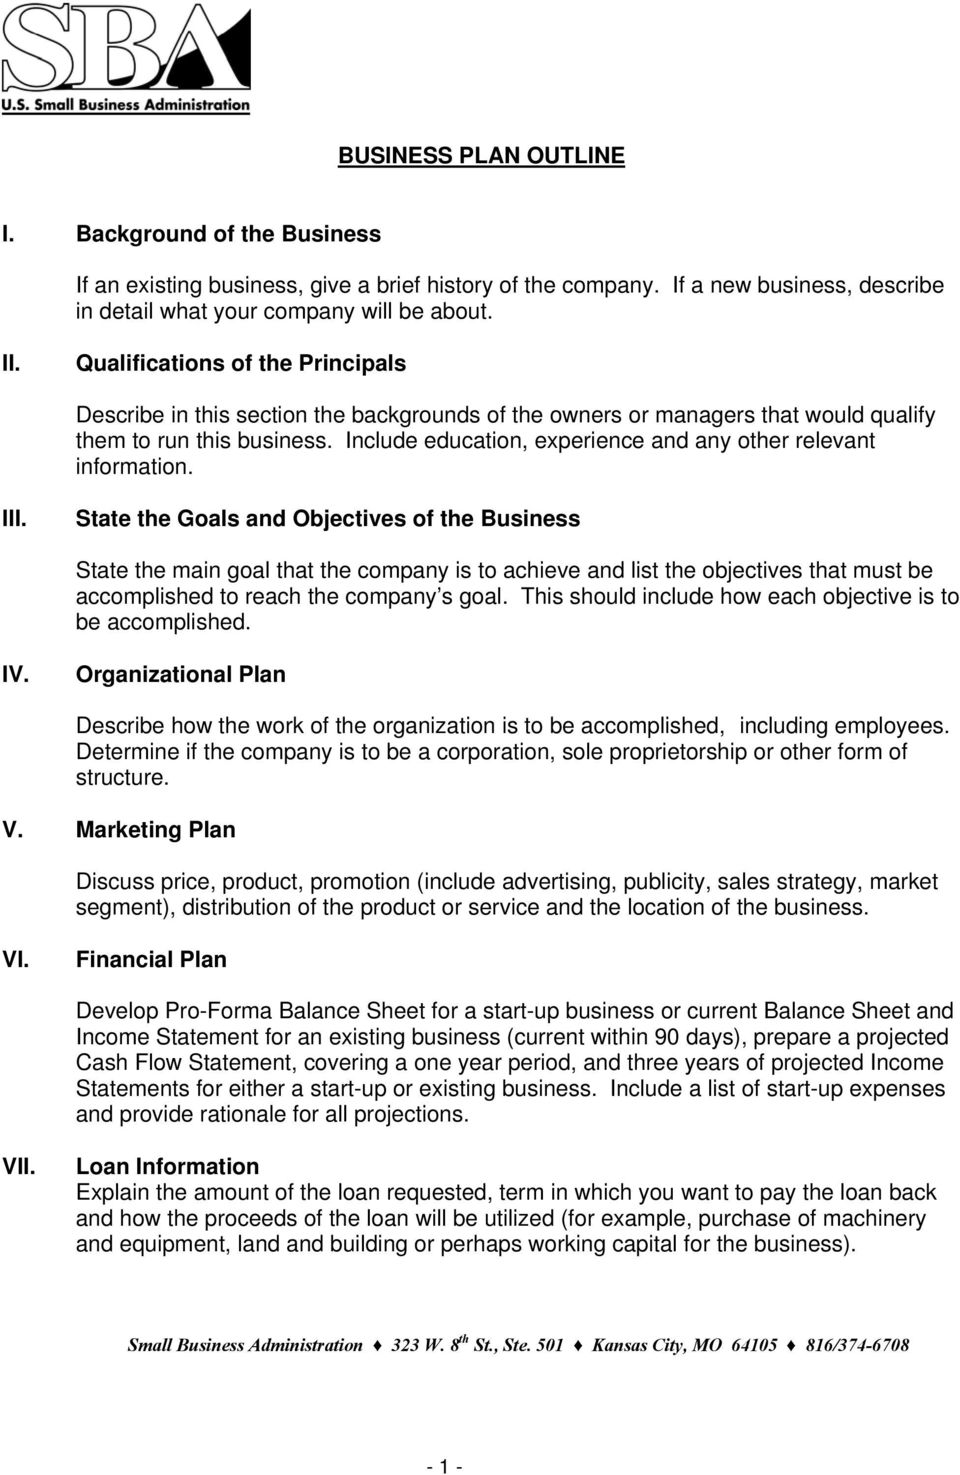 Business Plan Outline Pdf Free